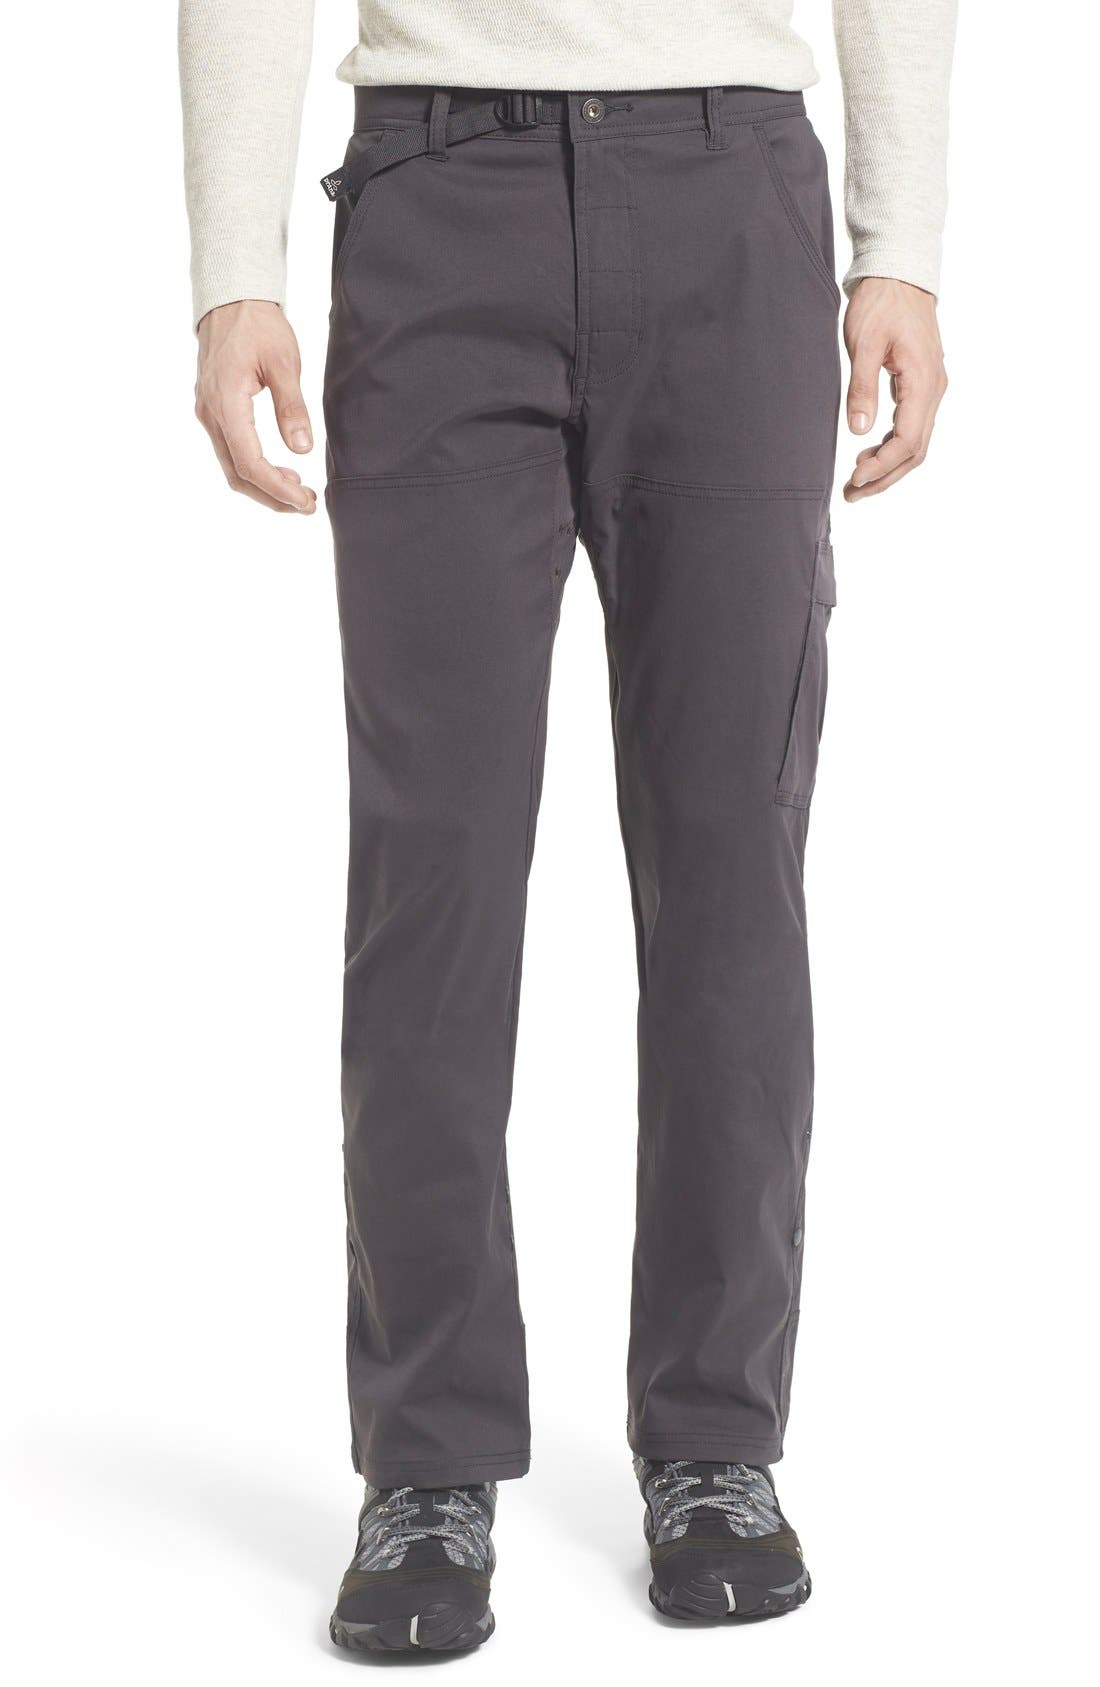 Zion Stretch Pants,                         Main,                         color, 010